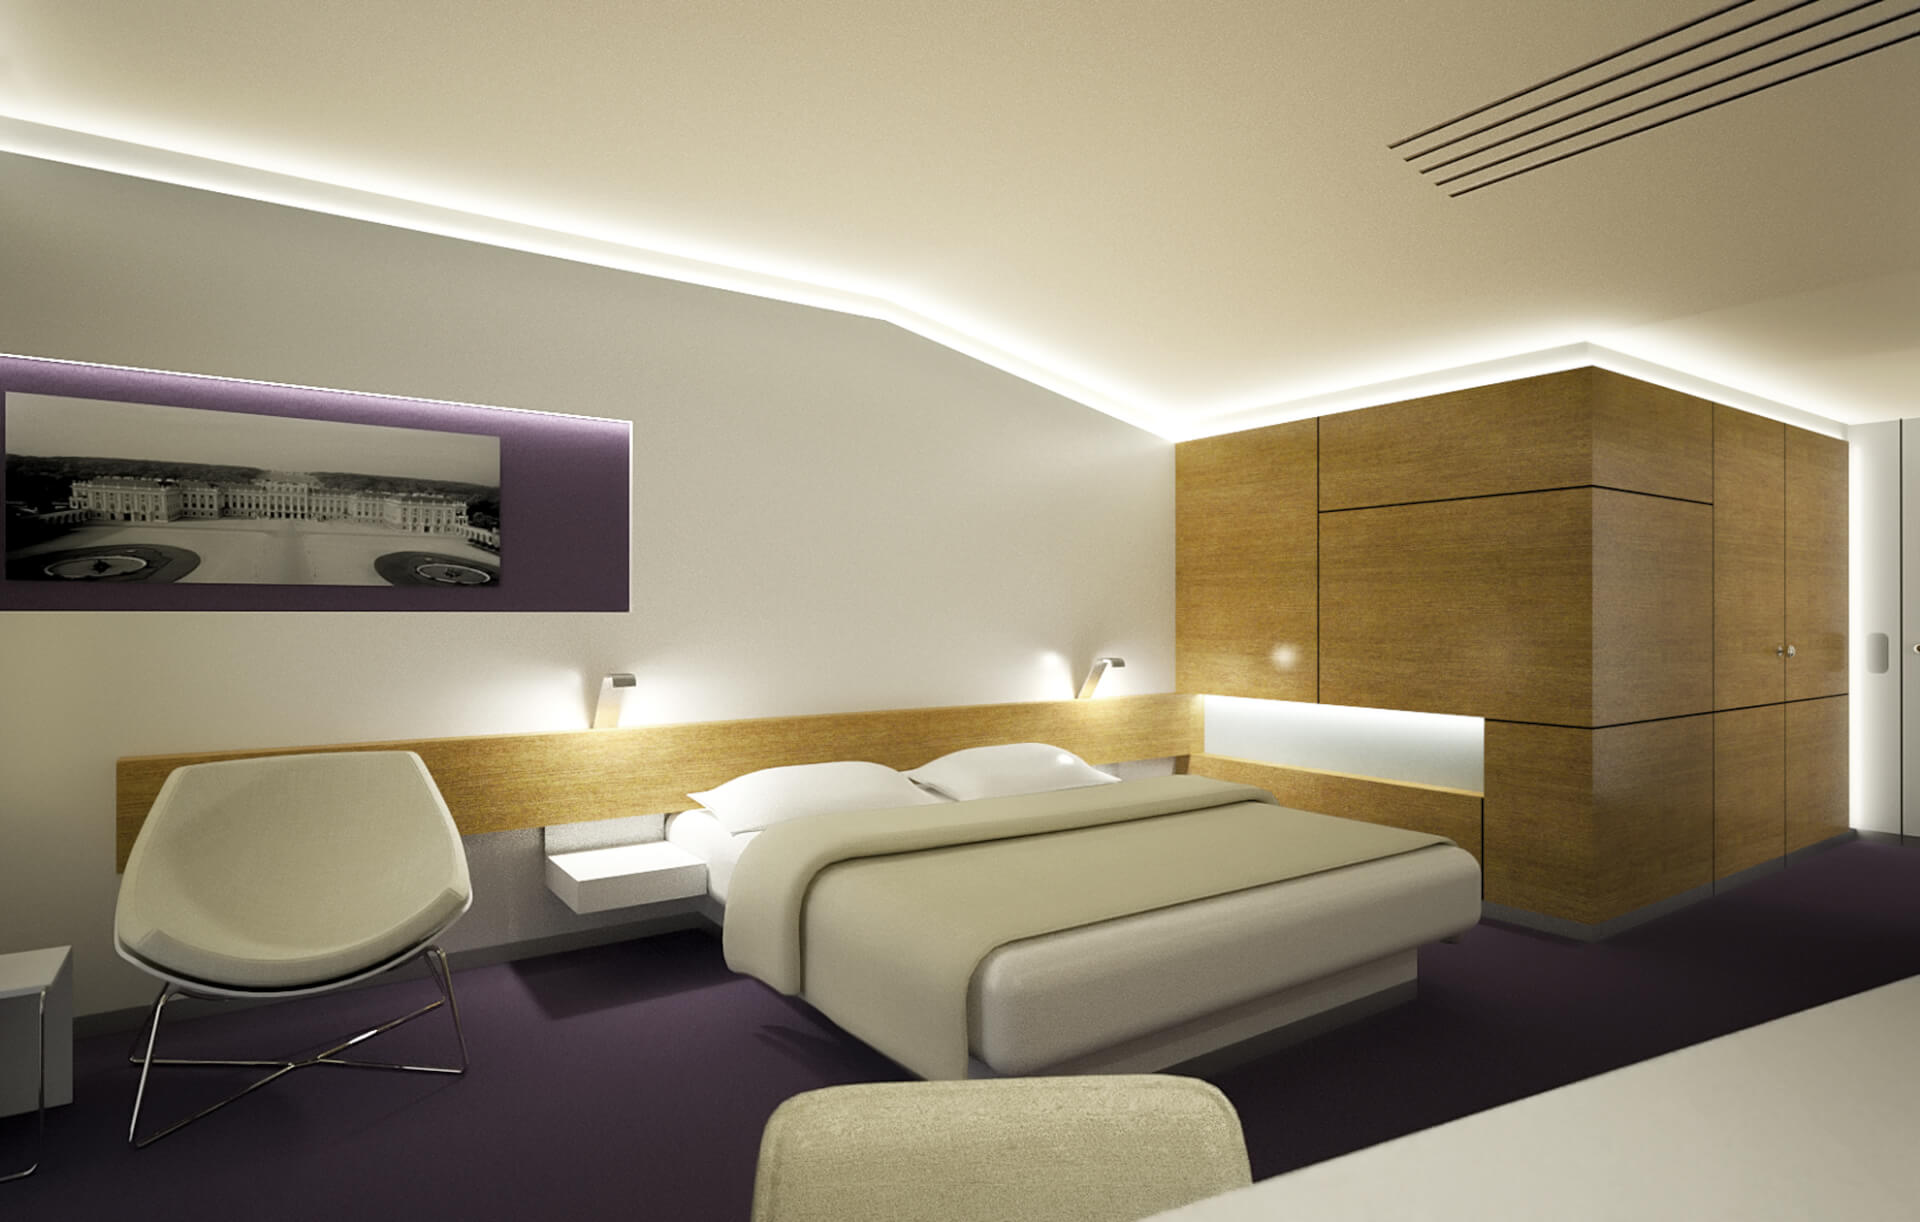 modern interior for hotel room, view to bed, wooden furniture